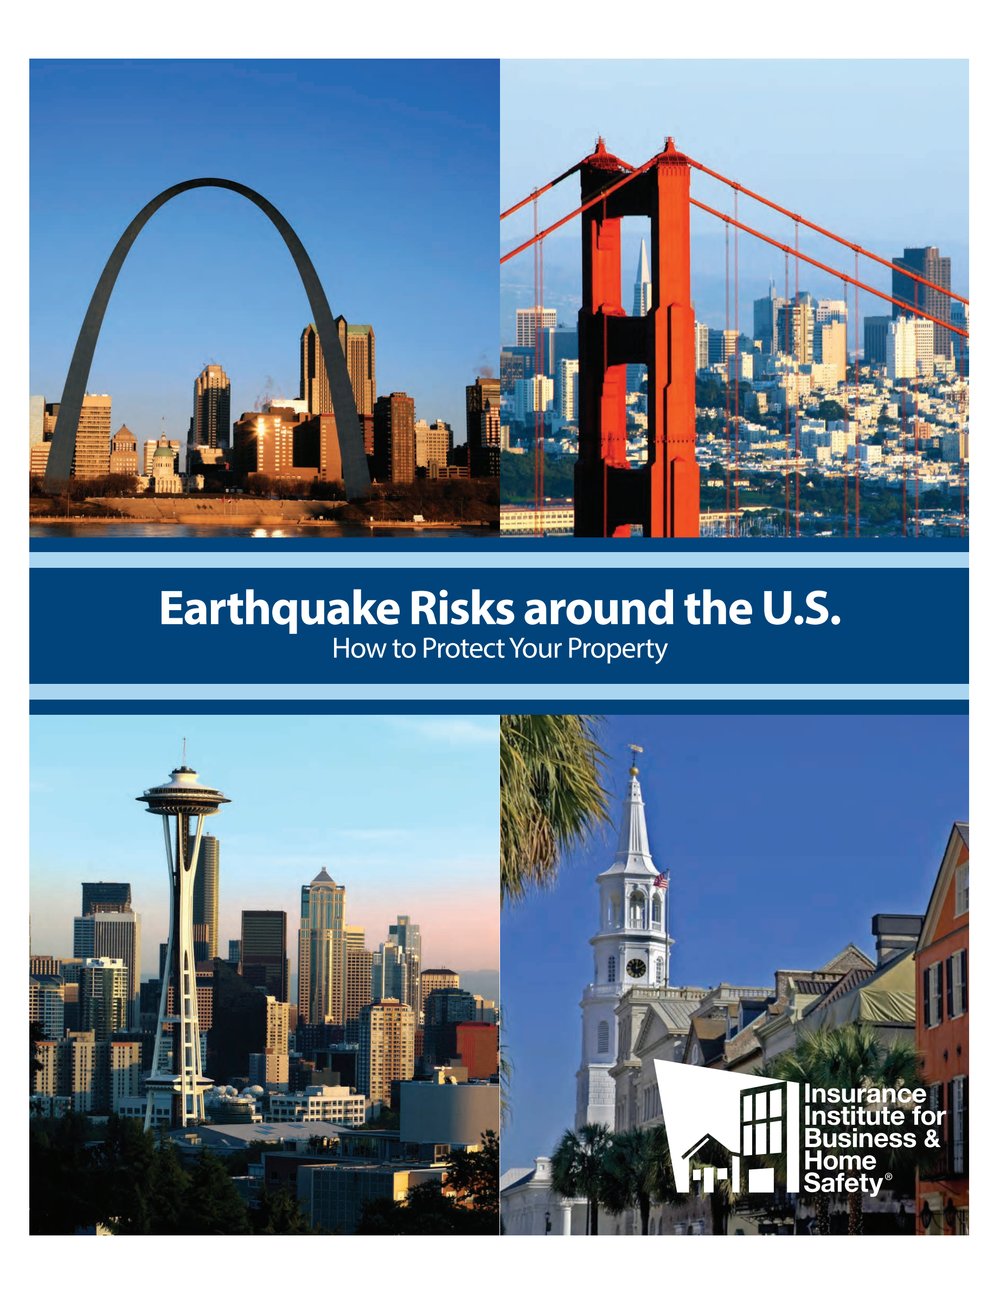 Earthquake Risks Around the U.S.